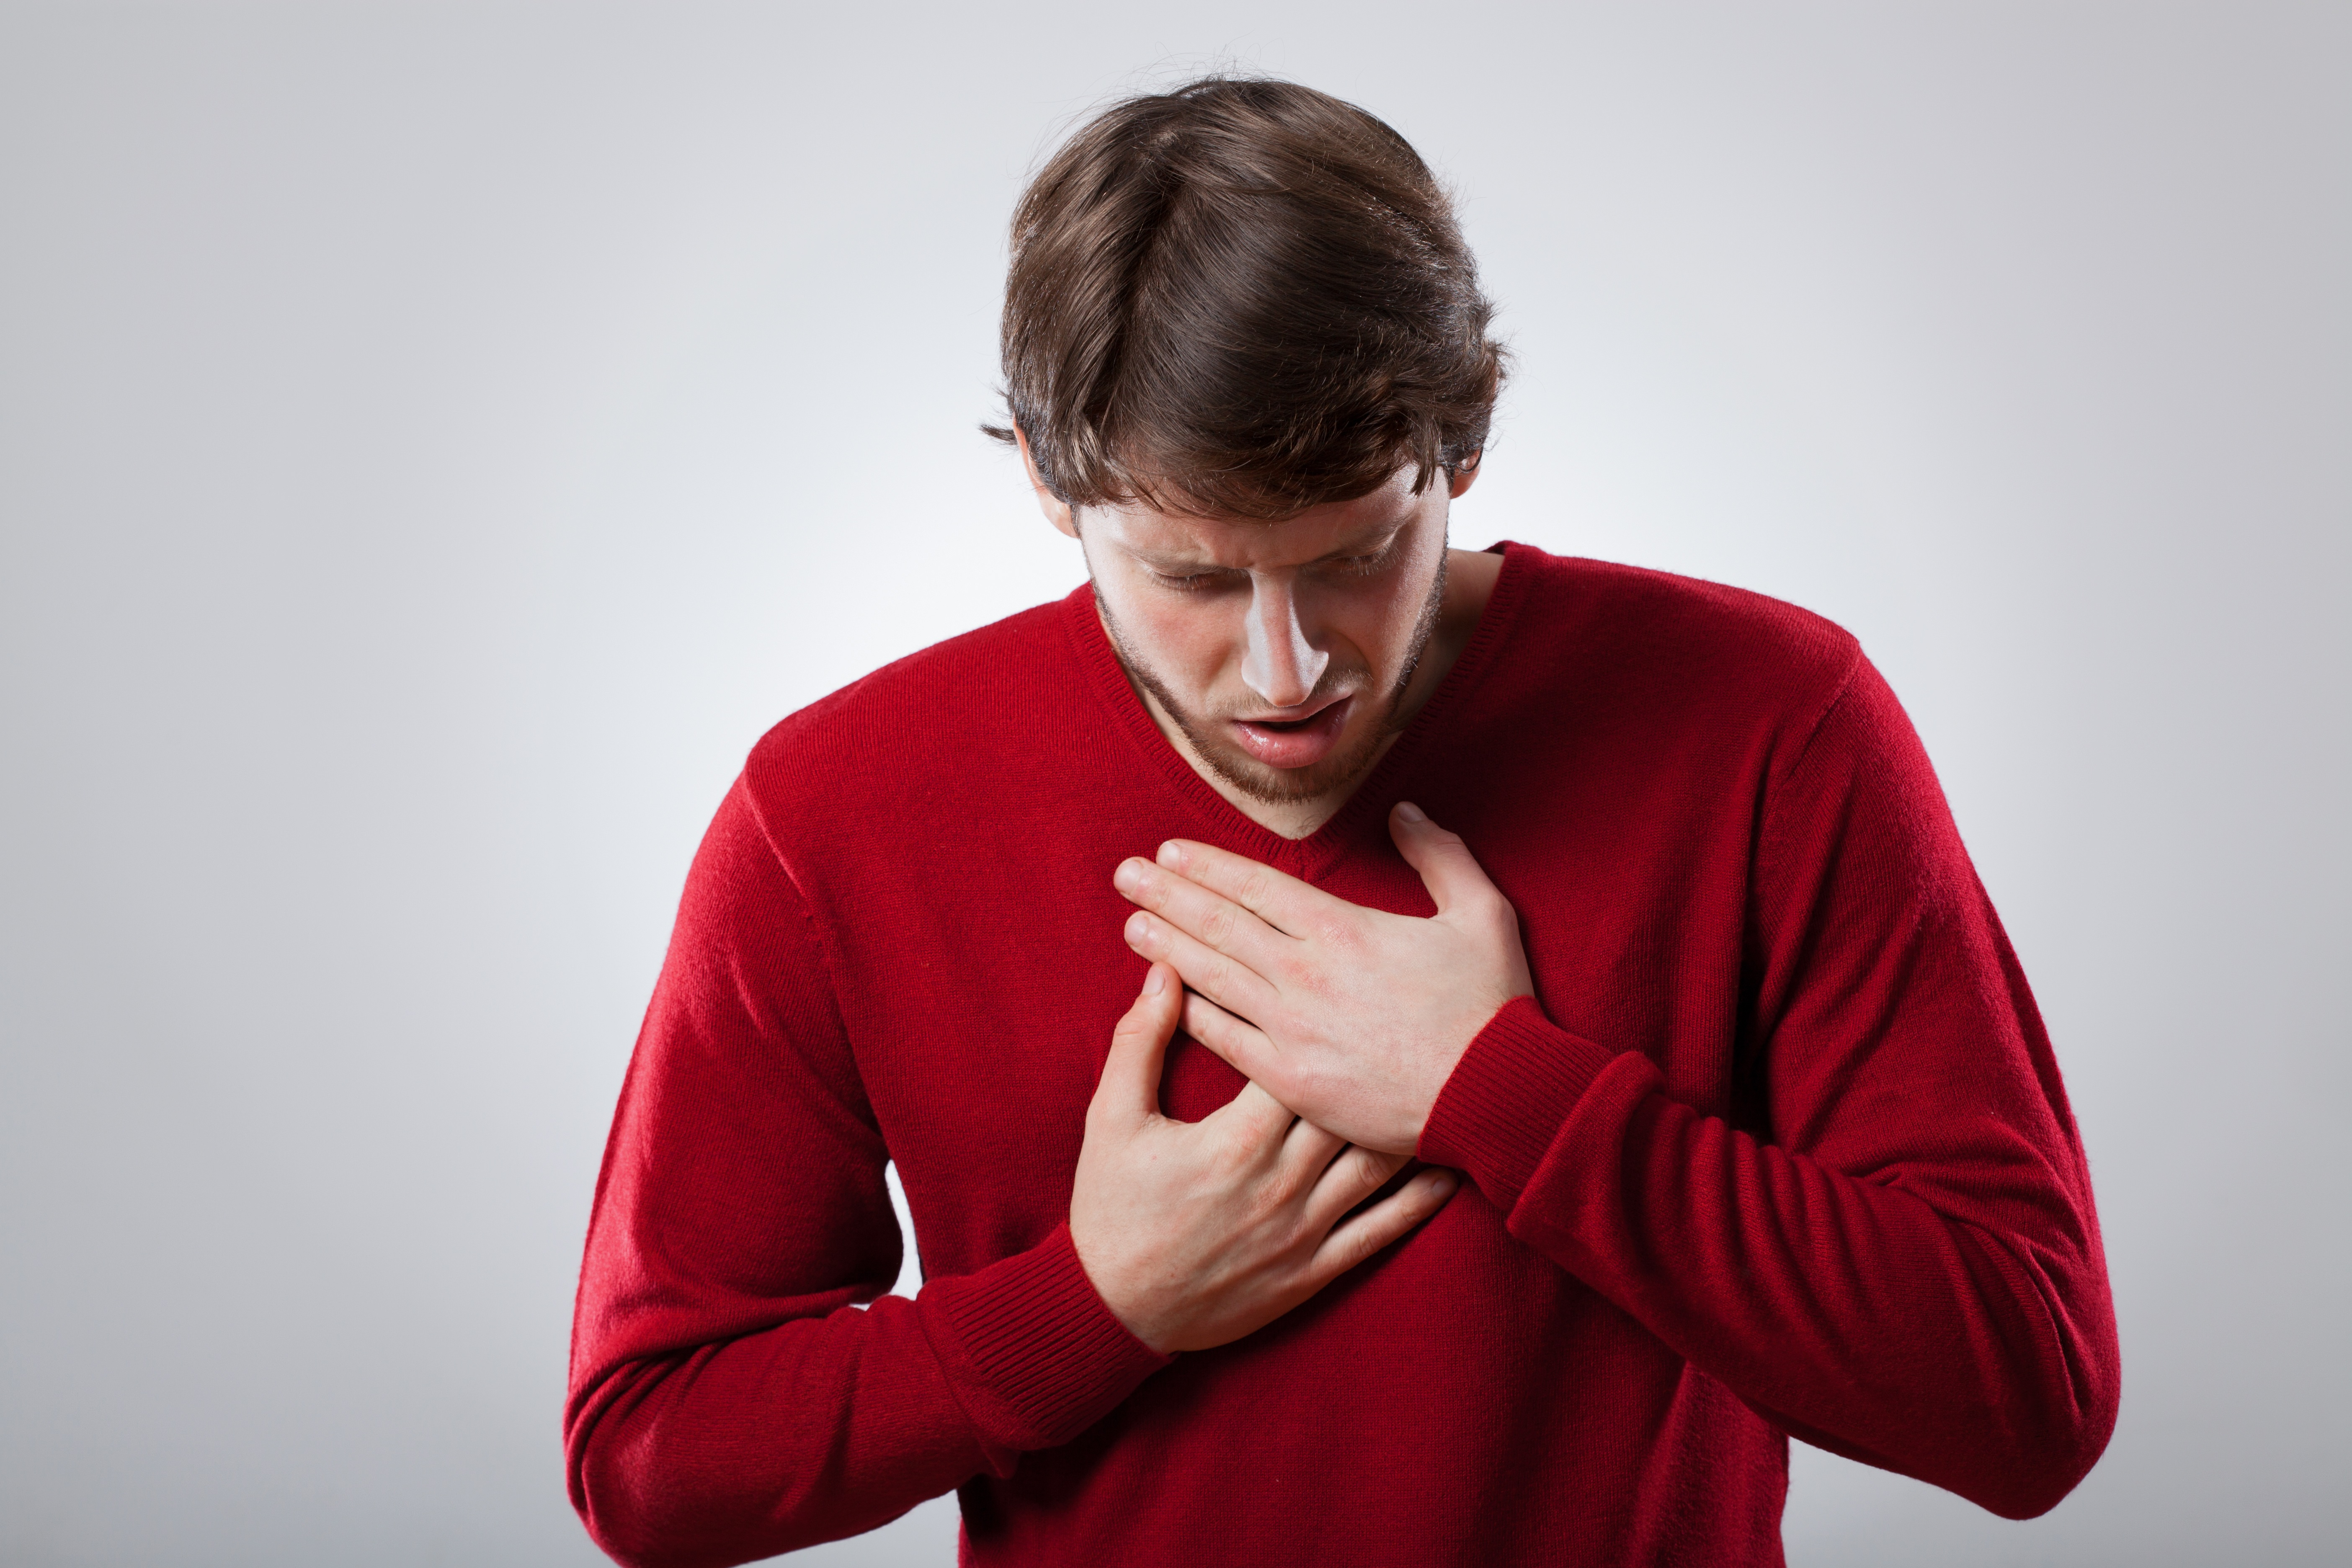 Borderline Pulmonary Pressure in Scleroderma Patients Linked to a Pre-Pulmonary Arterial Hypertension Condition